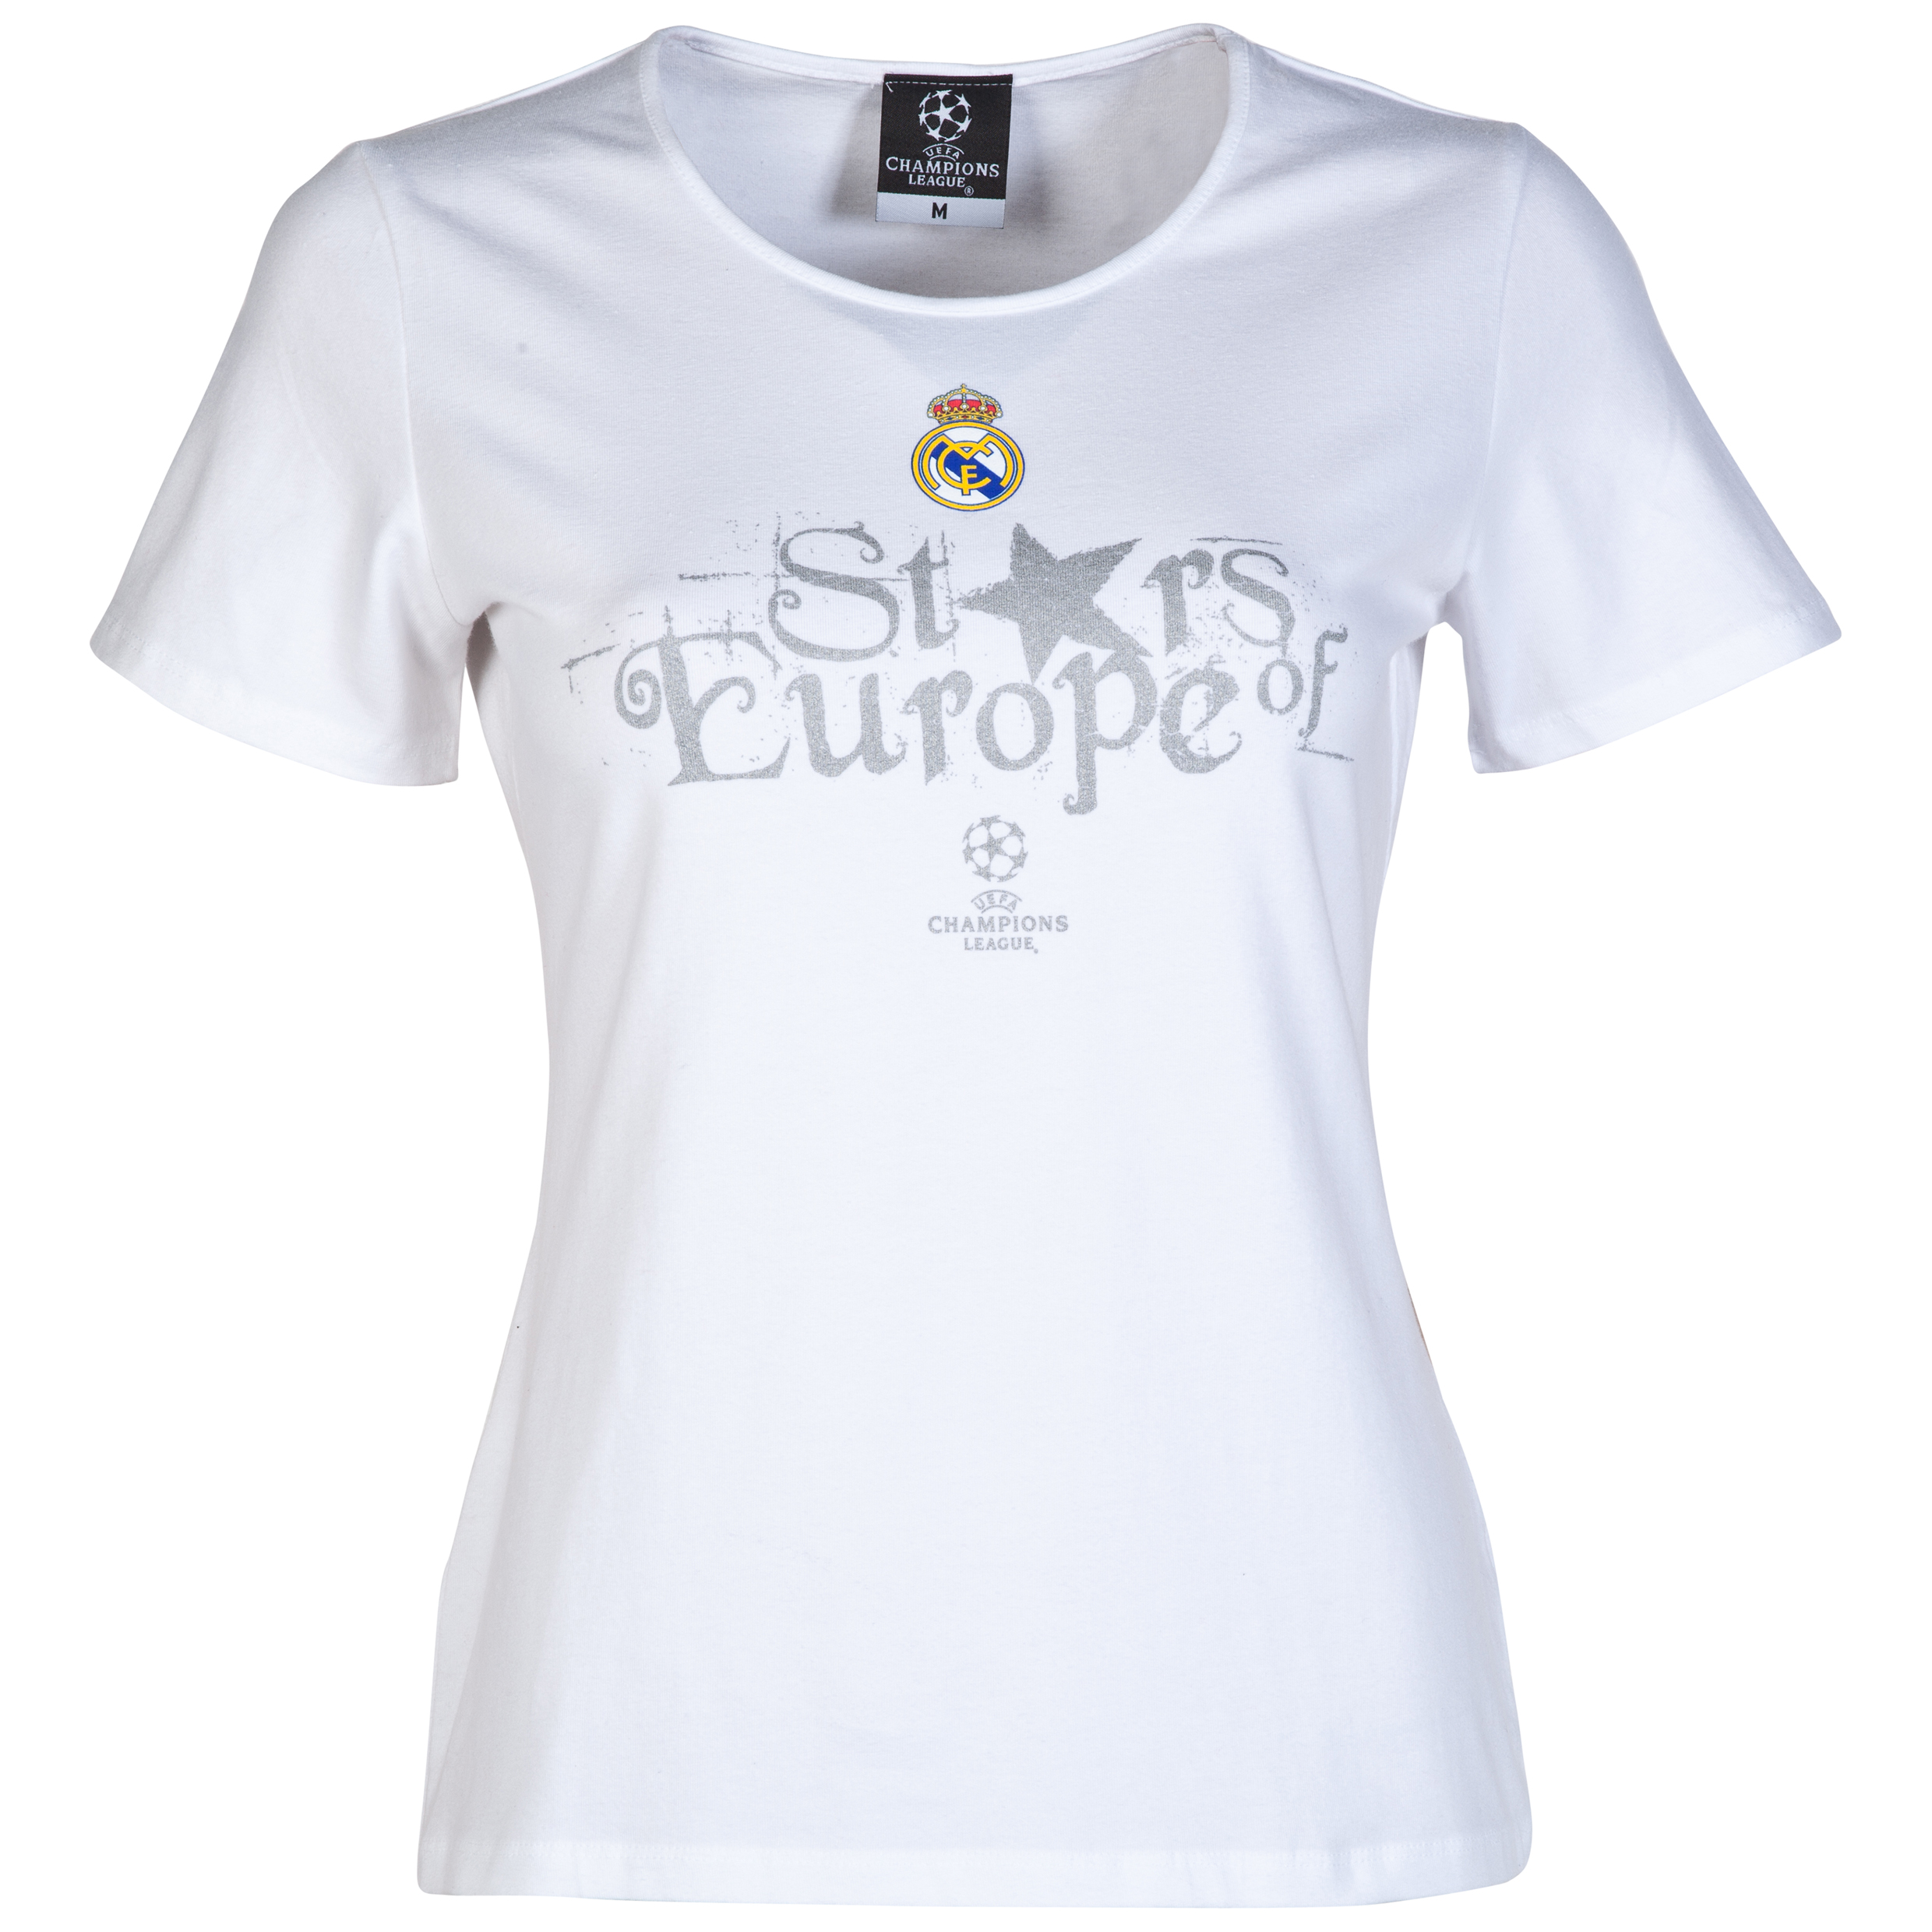 Real Madrid UEFA Champions League Stars of Europe T-Shirt - Womens White